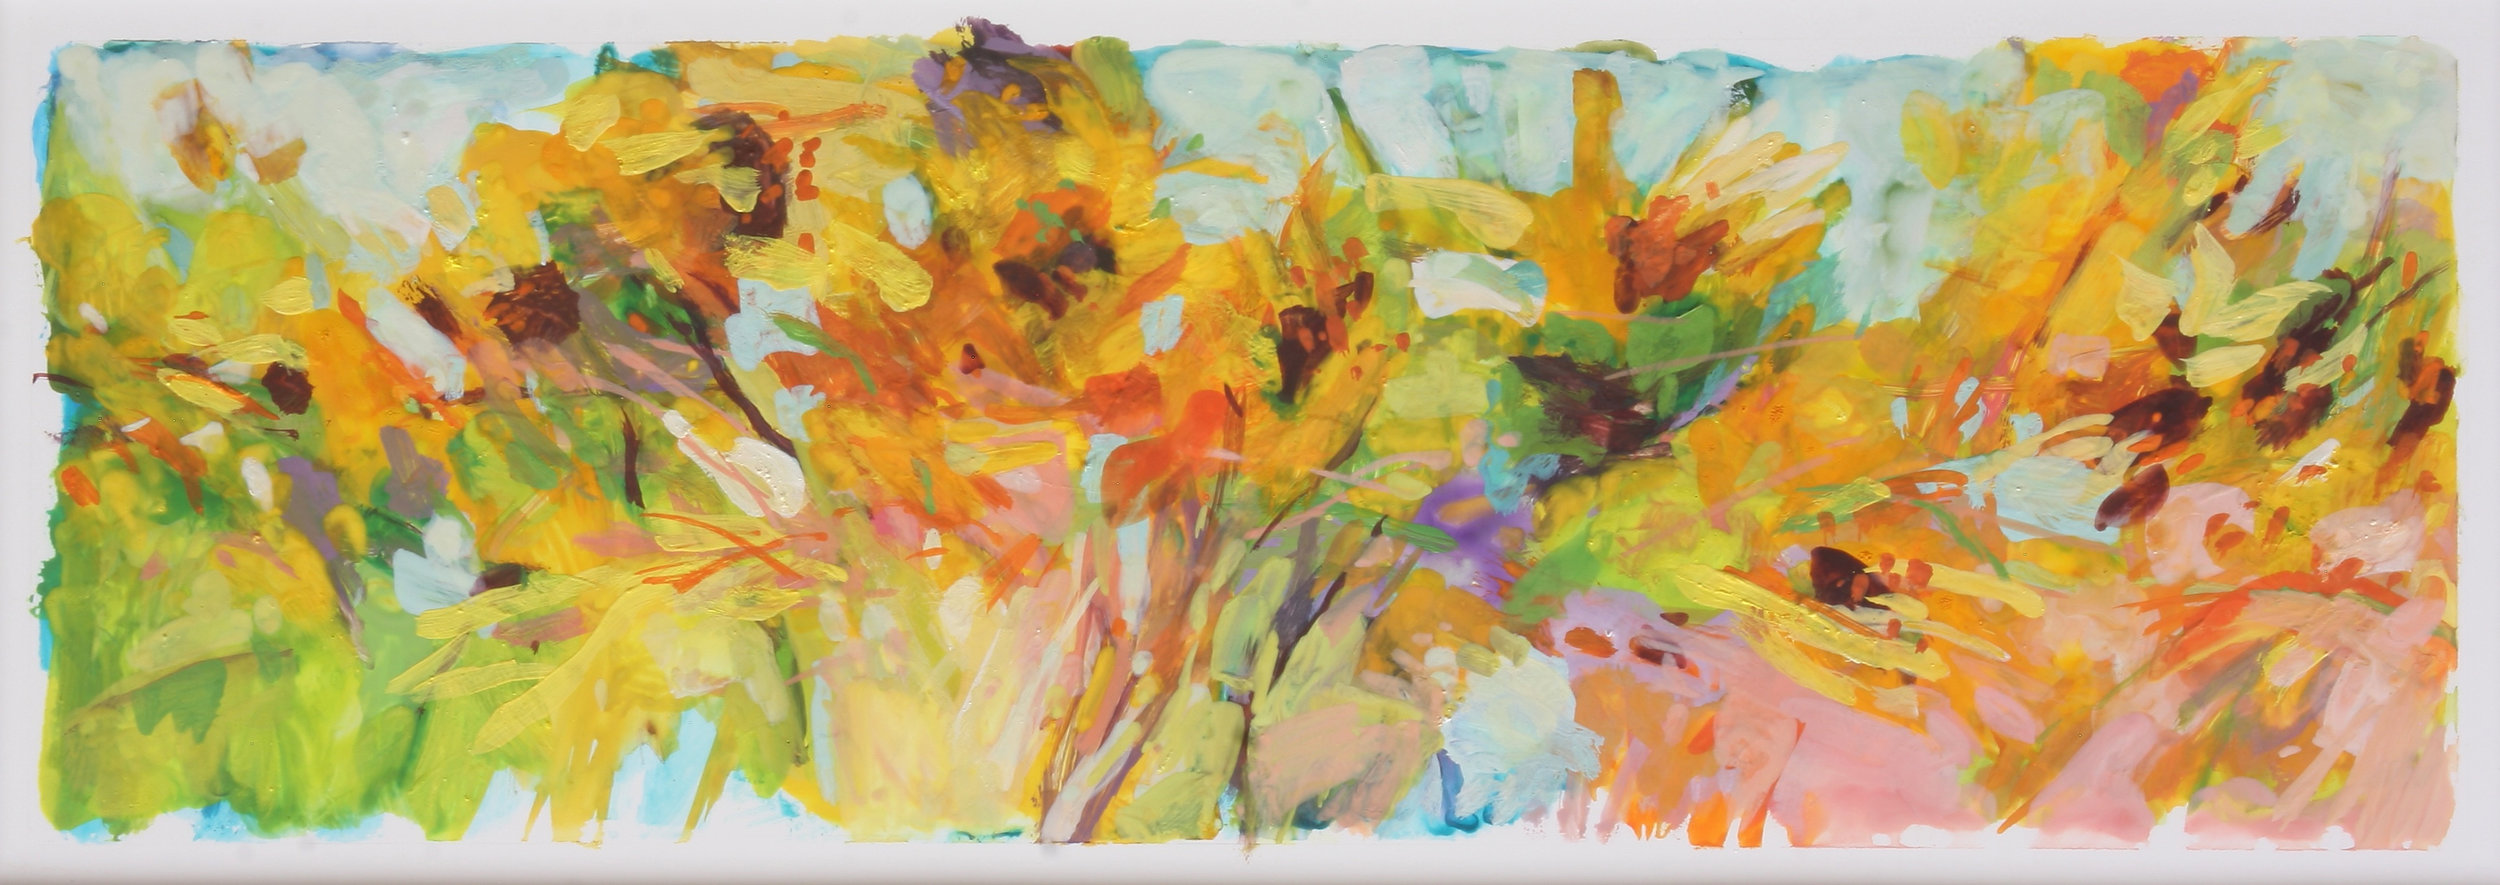 "After the Rains - California Sunflowers 5"" x 15.5"" Gouache on Yupo"